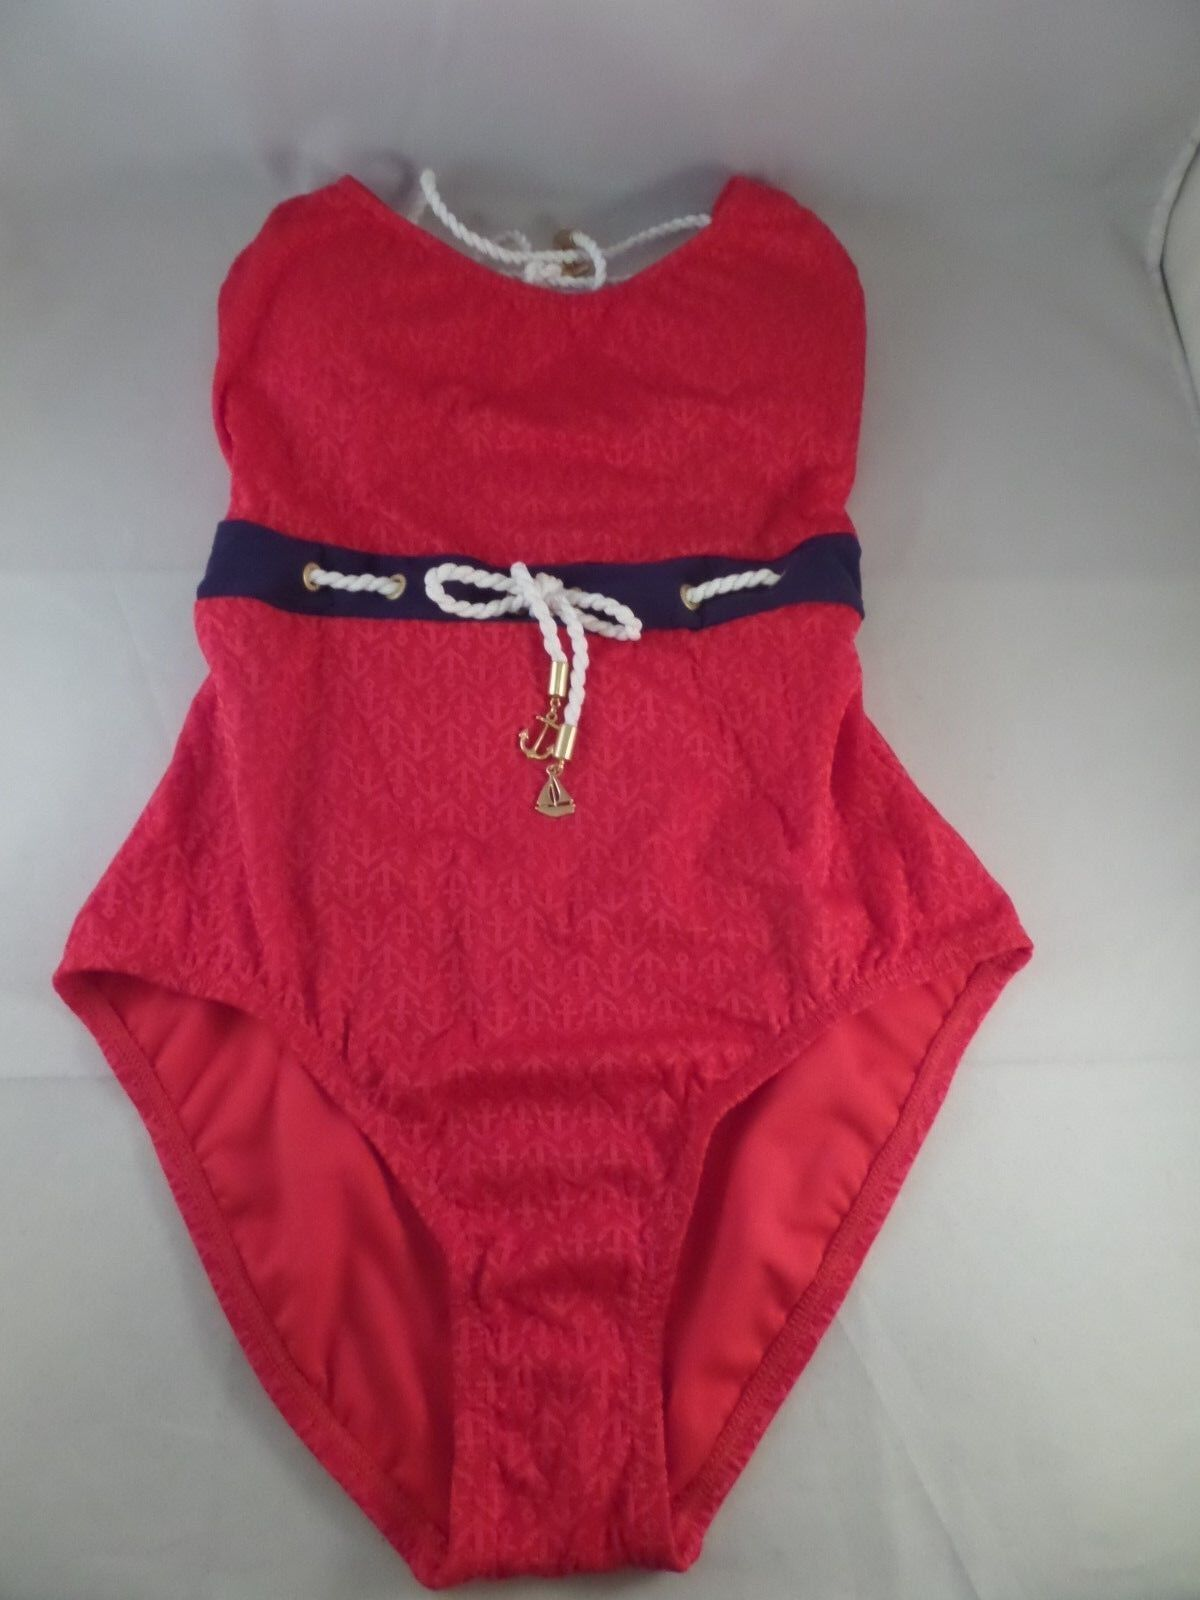 NWT Sperry Top-Sider Womens Ahoy Matey Halter 1pc Swimsuit Sz M MSRP  110